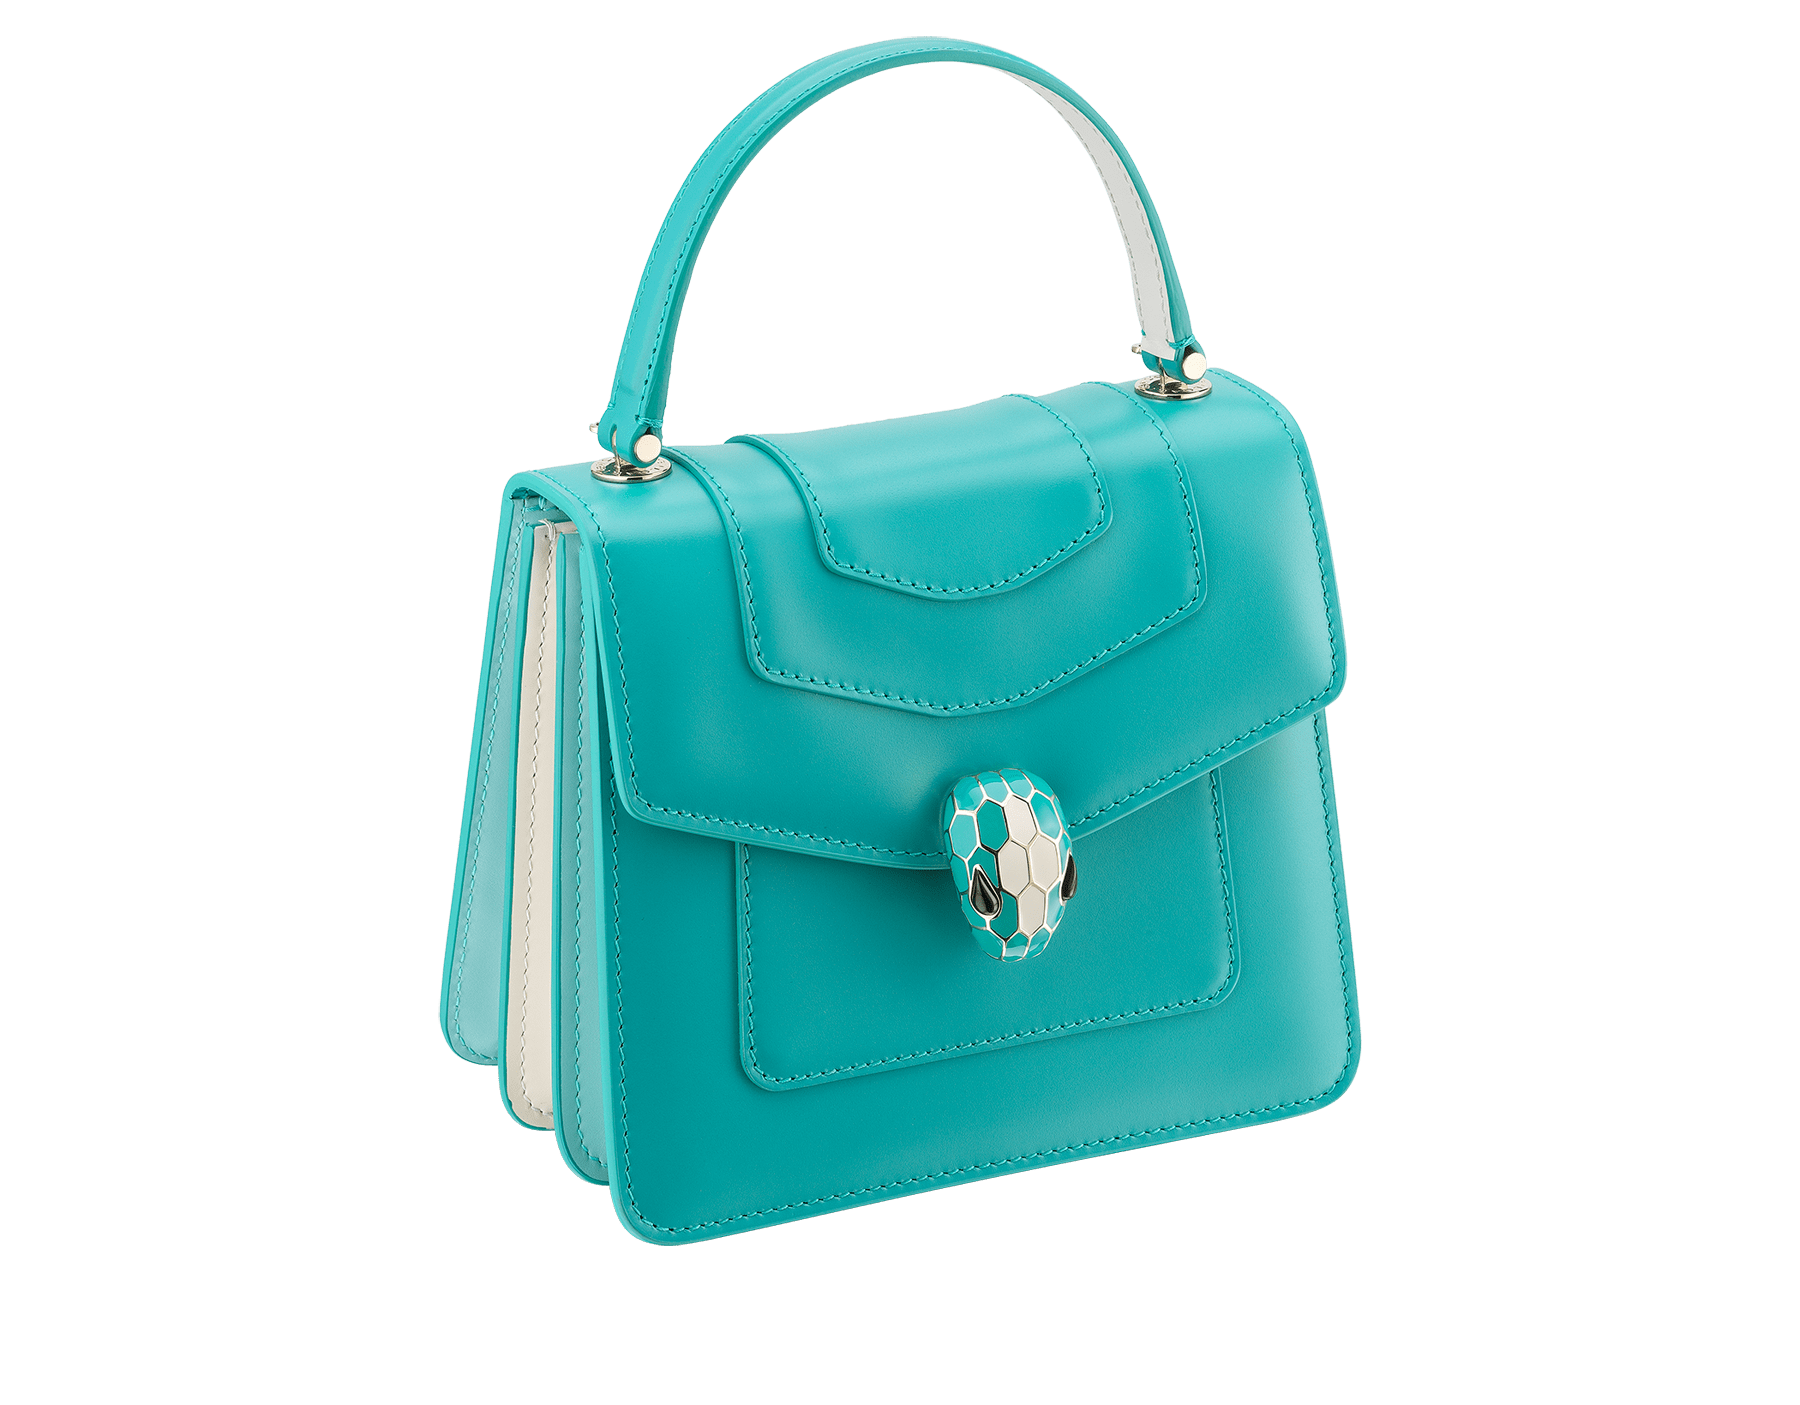 """Serpenti Forever "" crossbody bag in arctic jade calf leather body and glacier turquoise and white agate calf leather sides. Iconic snakehead closure in light gold plated brass enriched with arctic jade and white agate enamel and black onyx eyes. 288772 image 2"